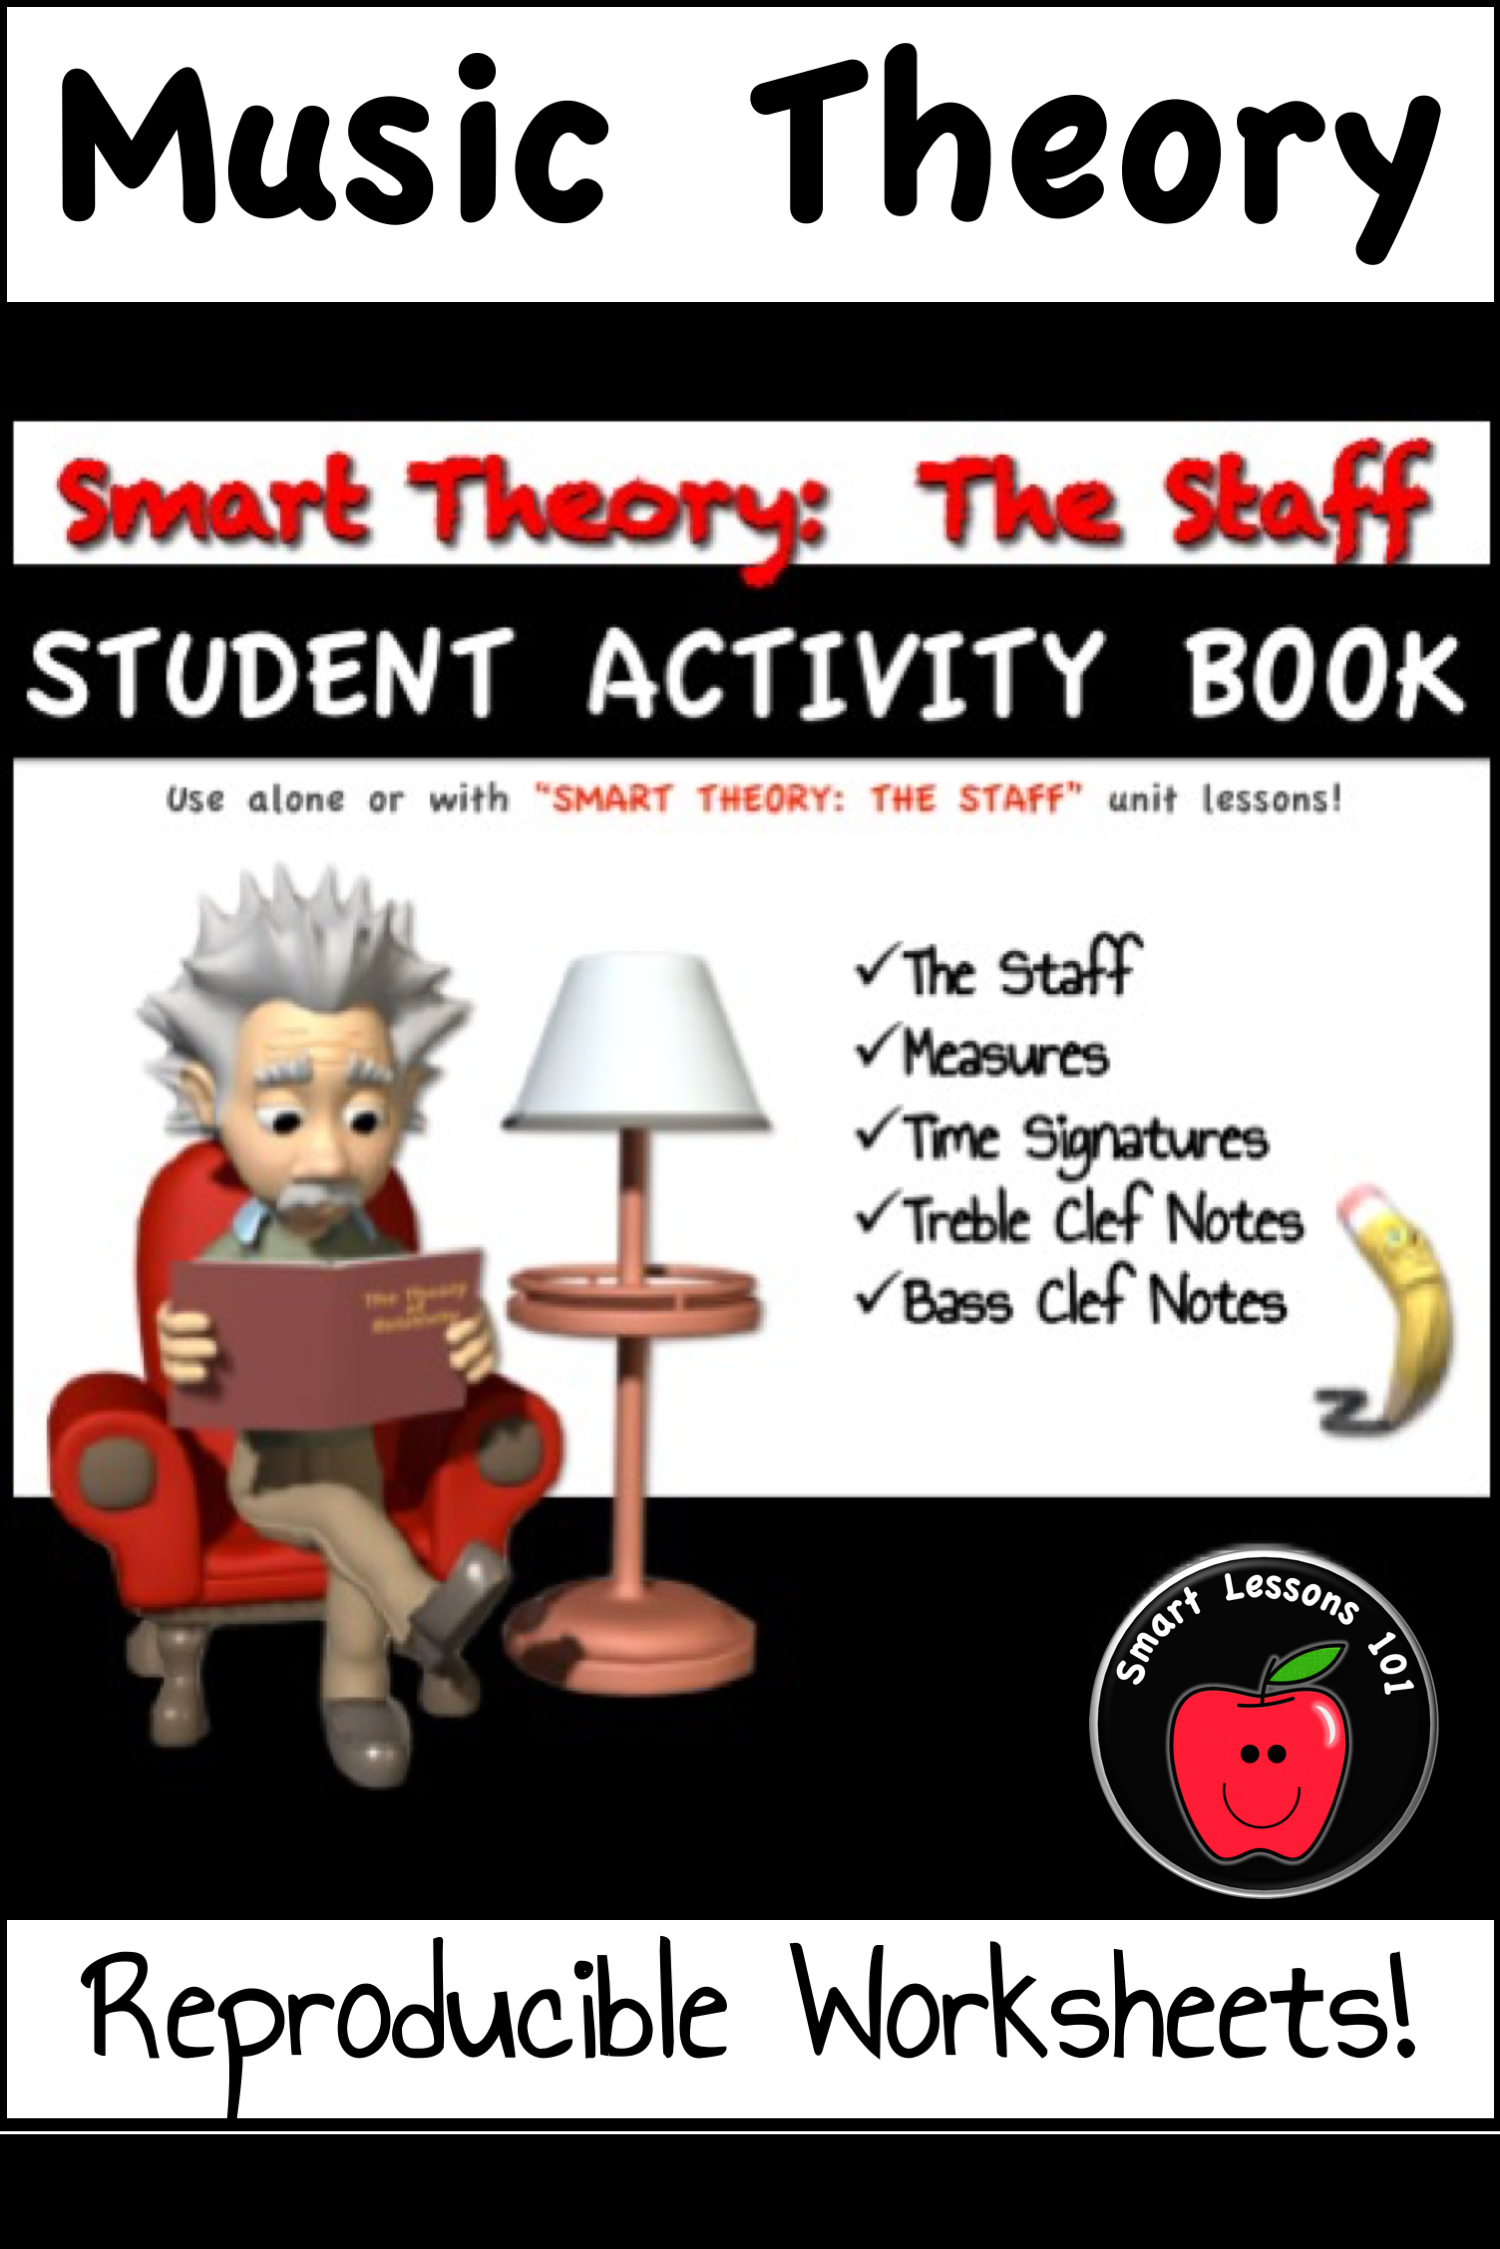 Reproducible Worksheets And Activities For Kids Including